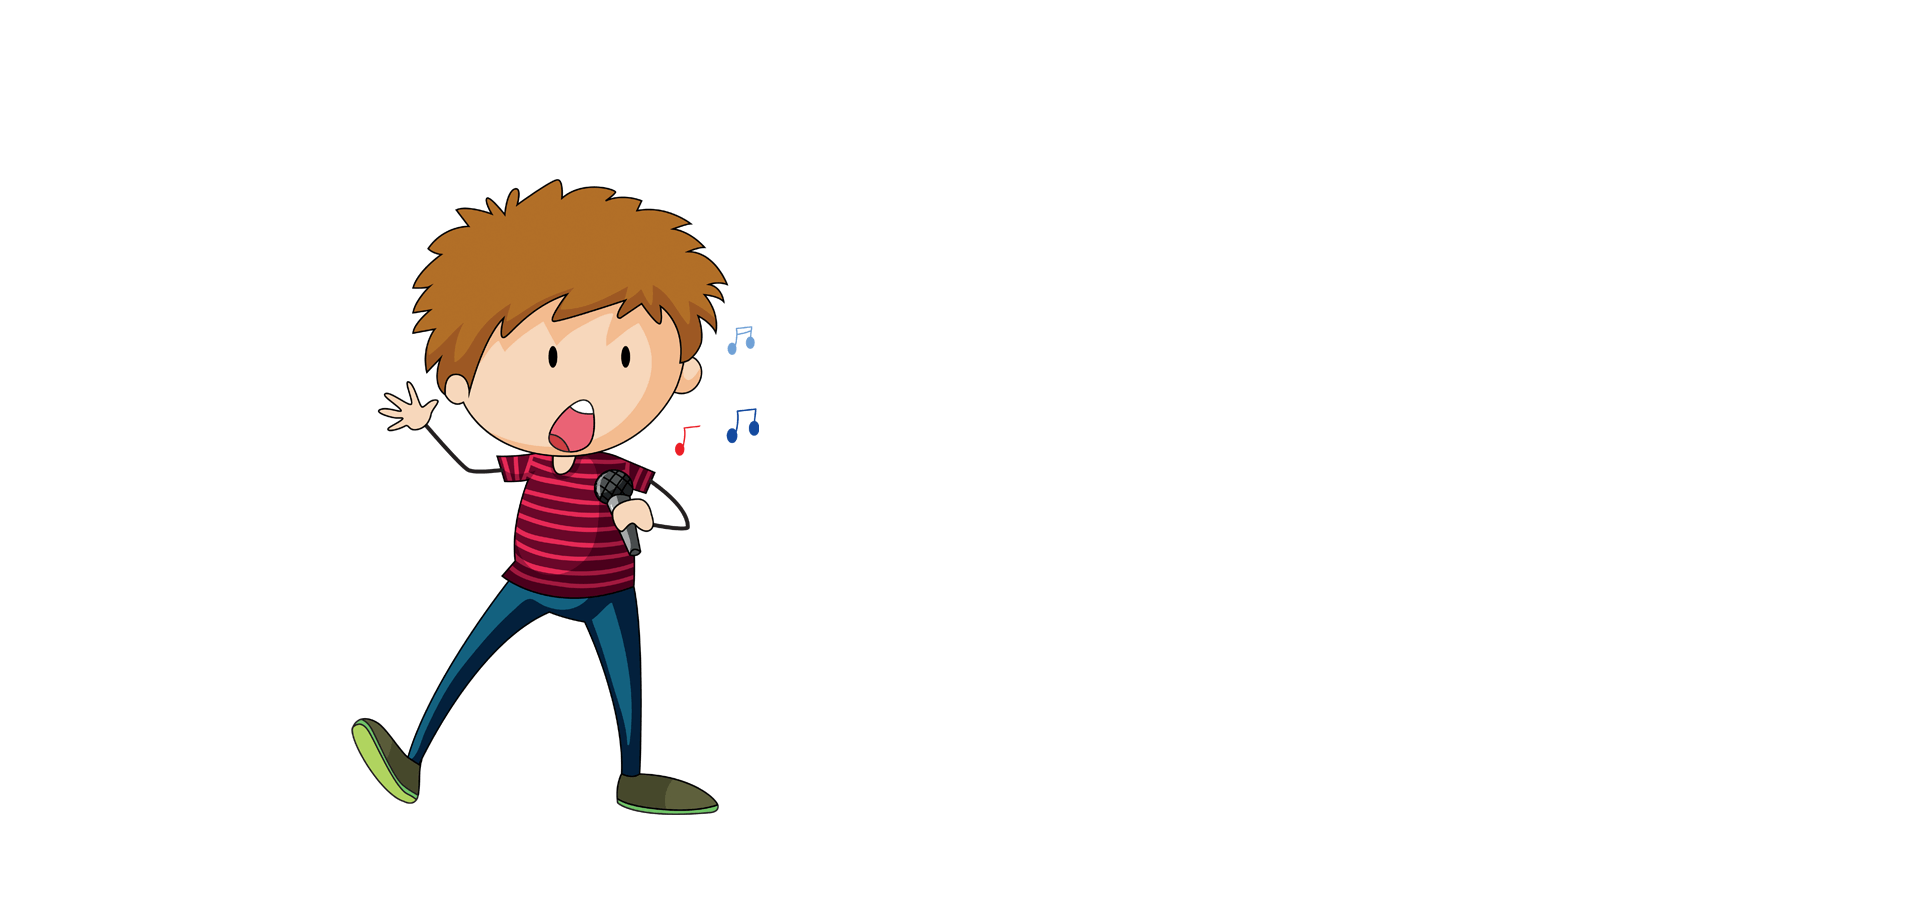 Singing snooknuk cafe previous. Storytime clipart boy